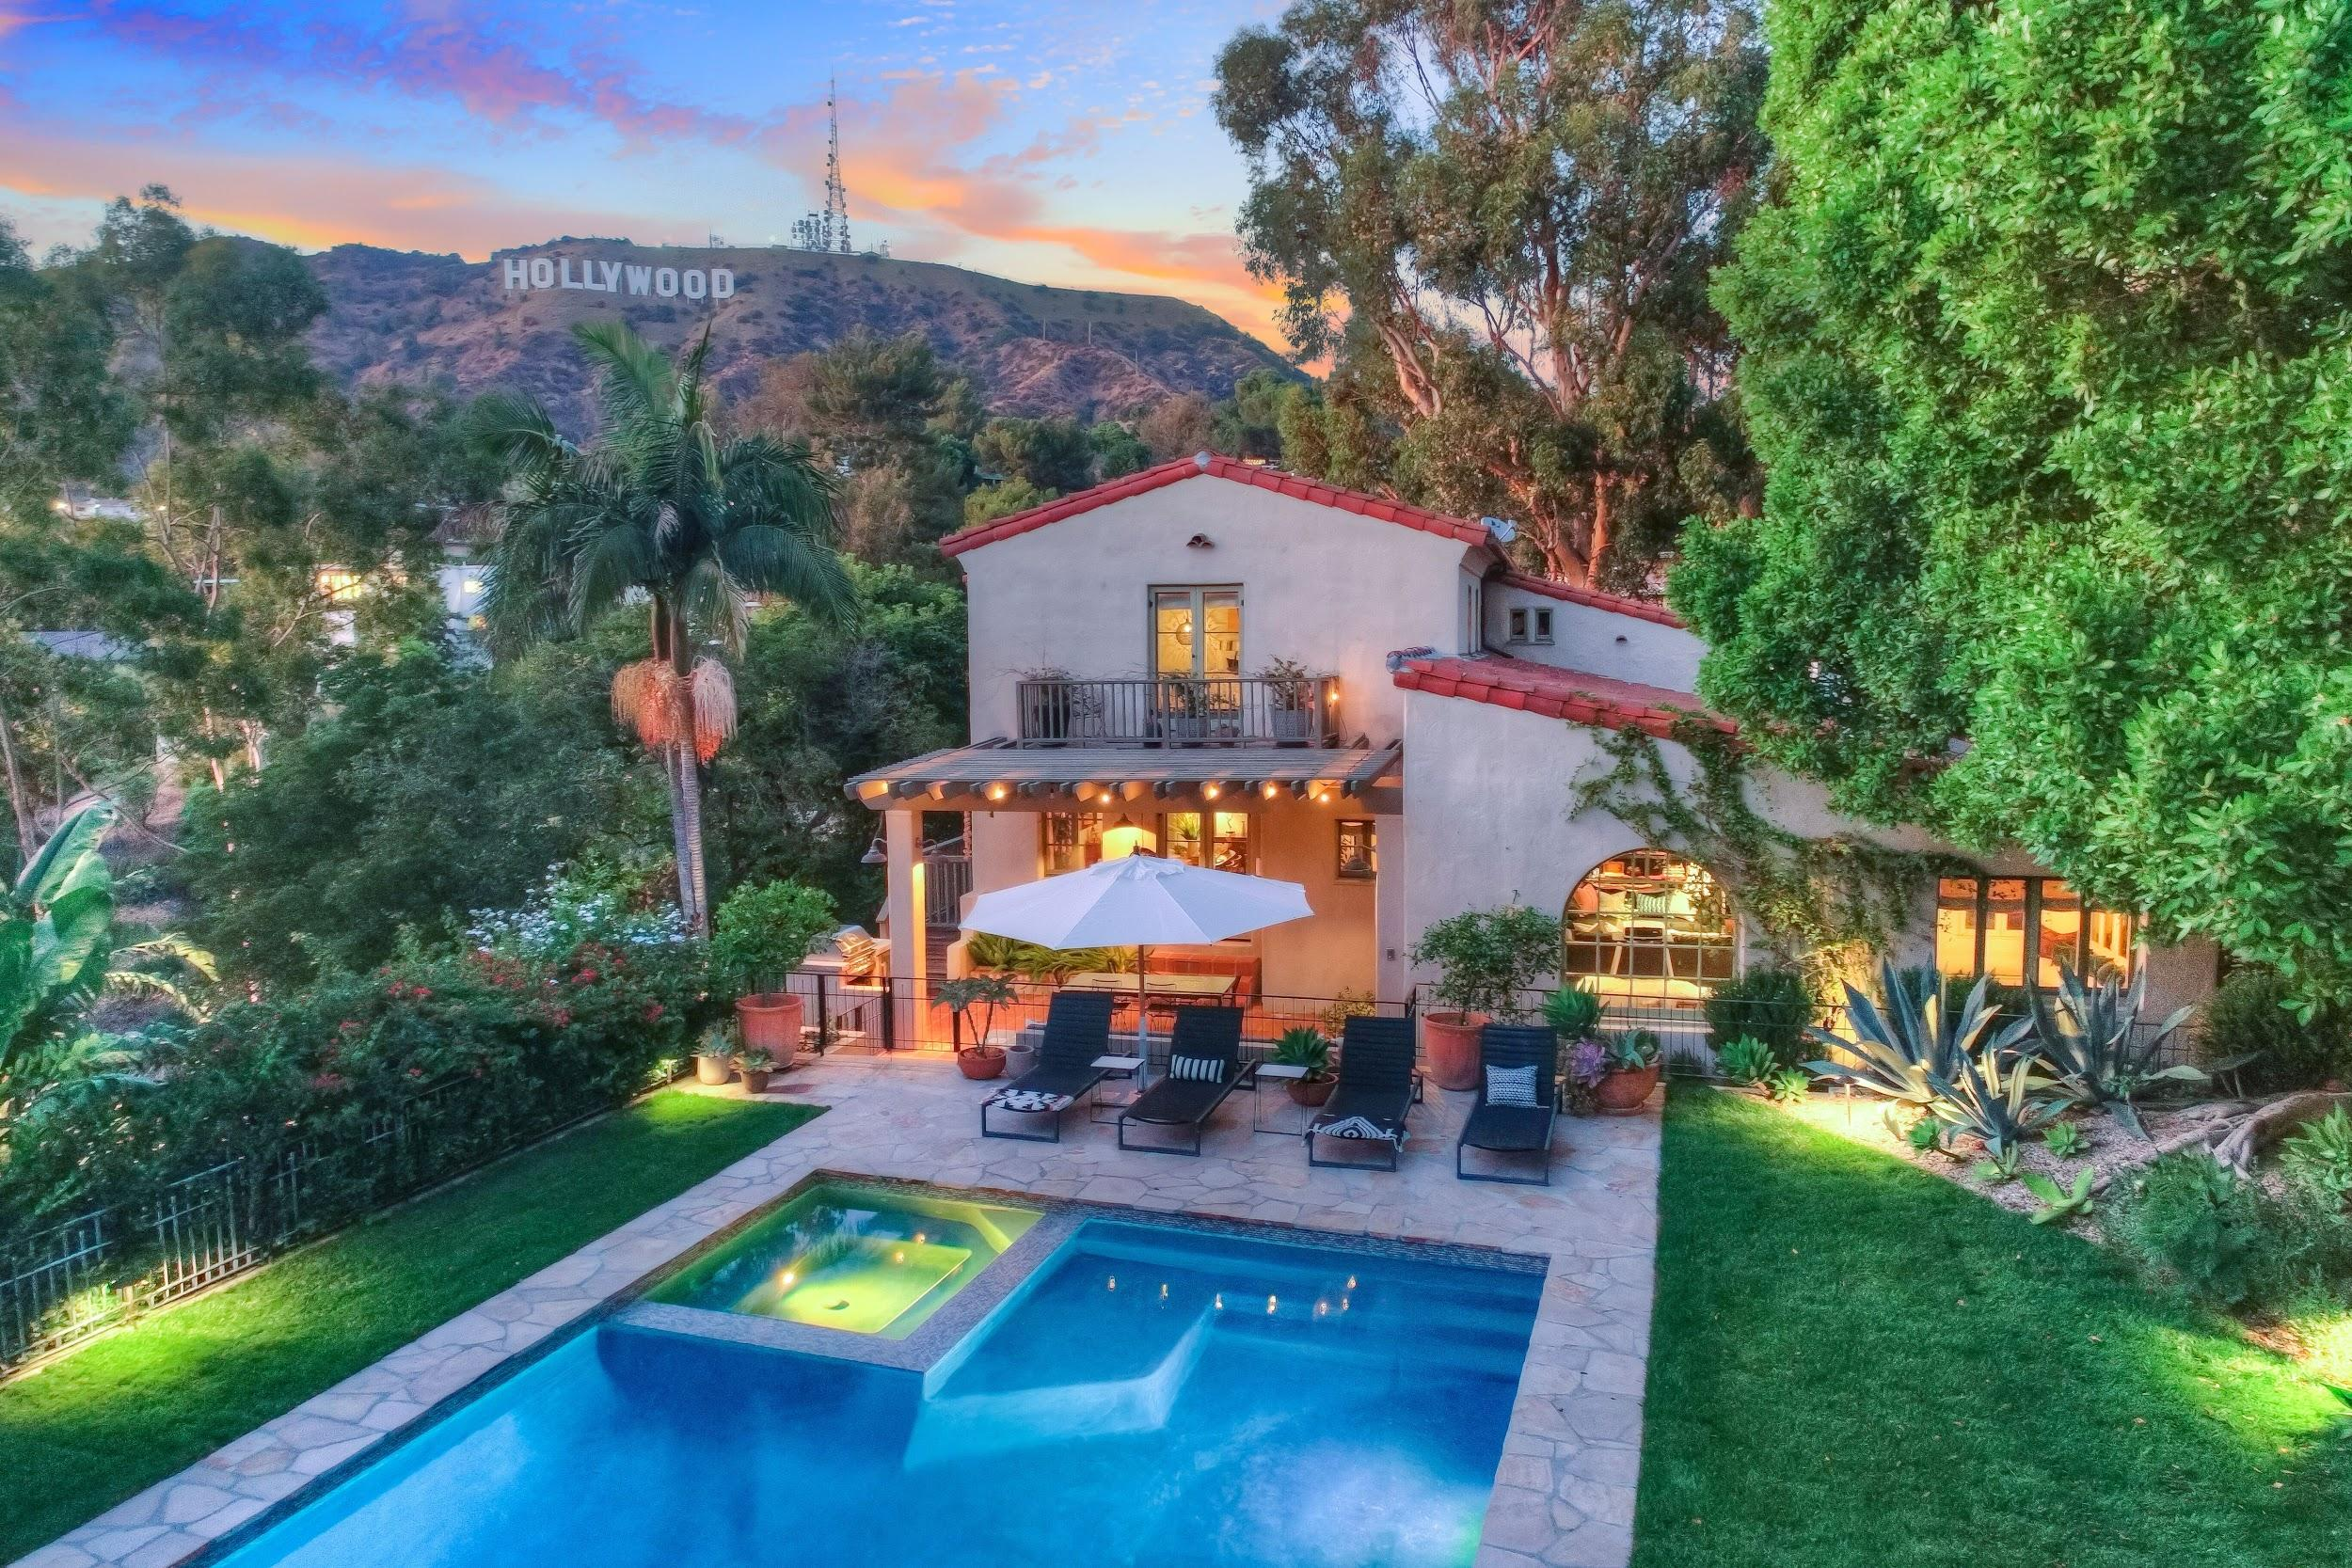 3 Impossibly Cool Spanish Colonial Revival Houses In LA & Beyond